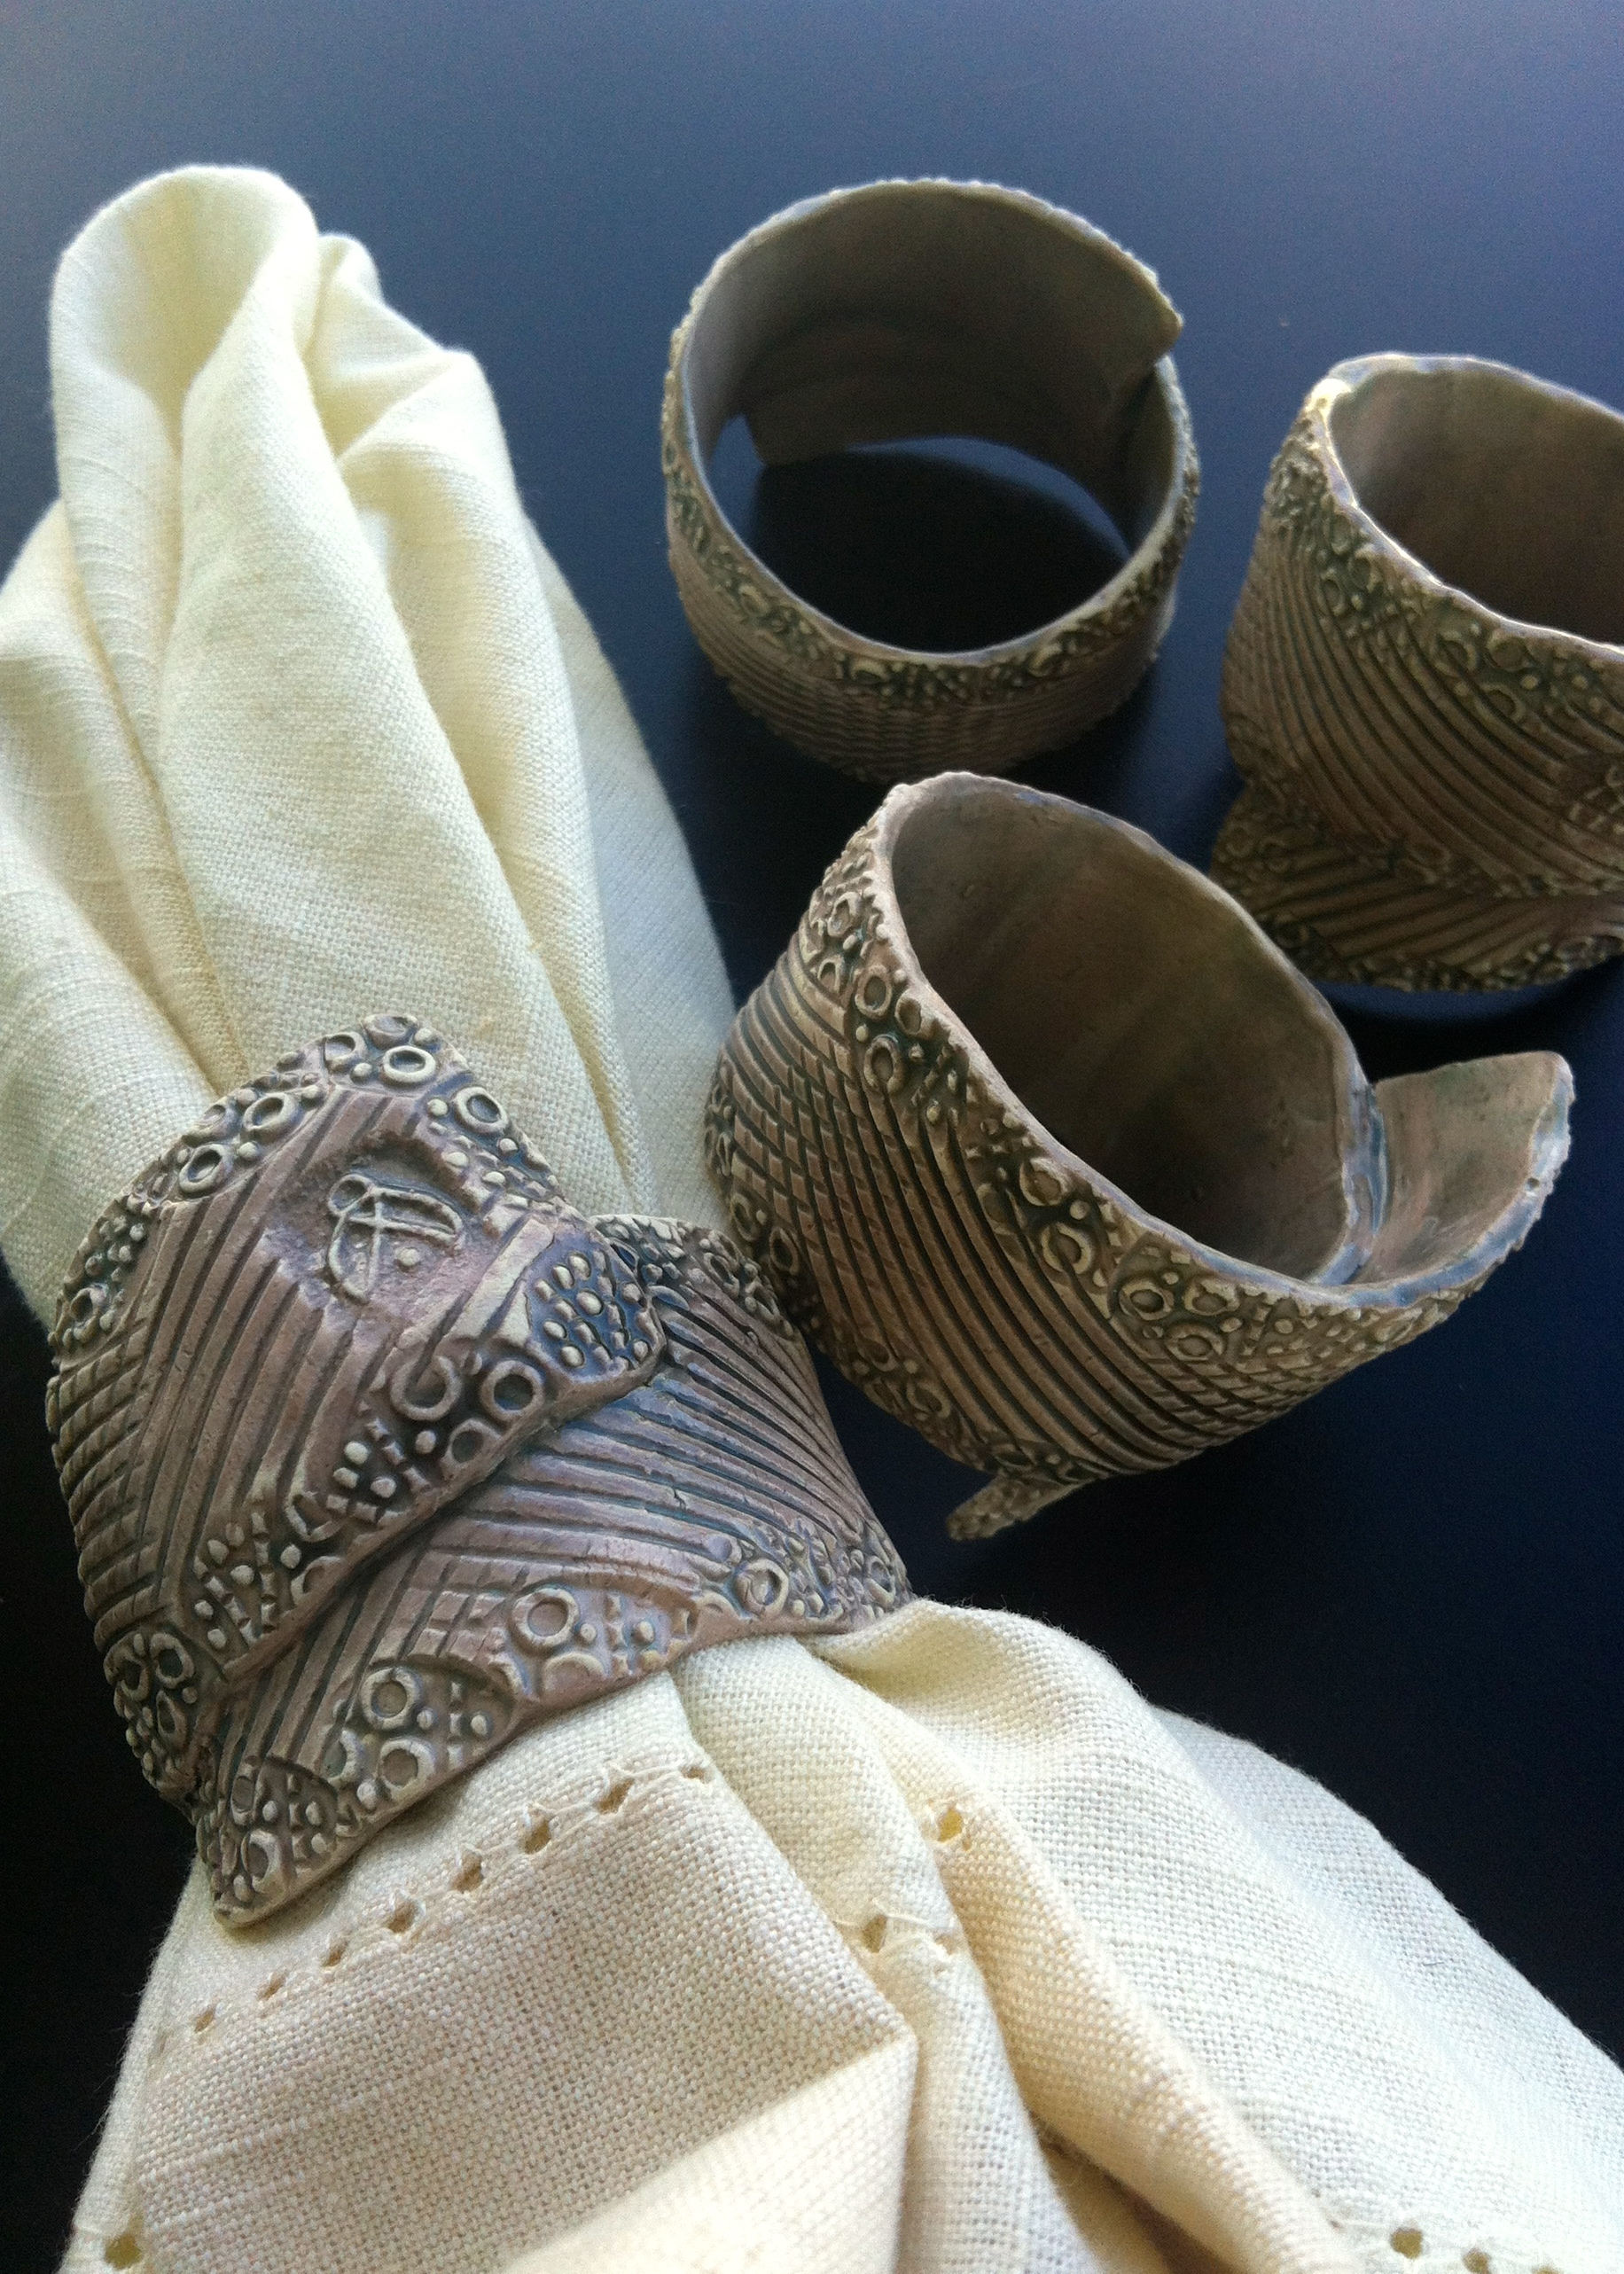 Napkin rings made by hand in The Bahamas at 143 Pottery.